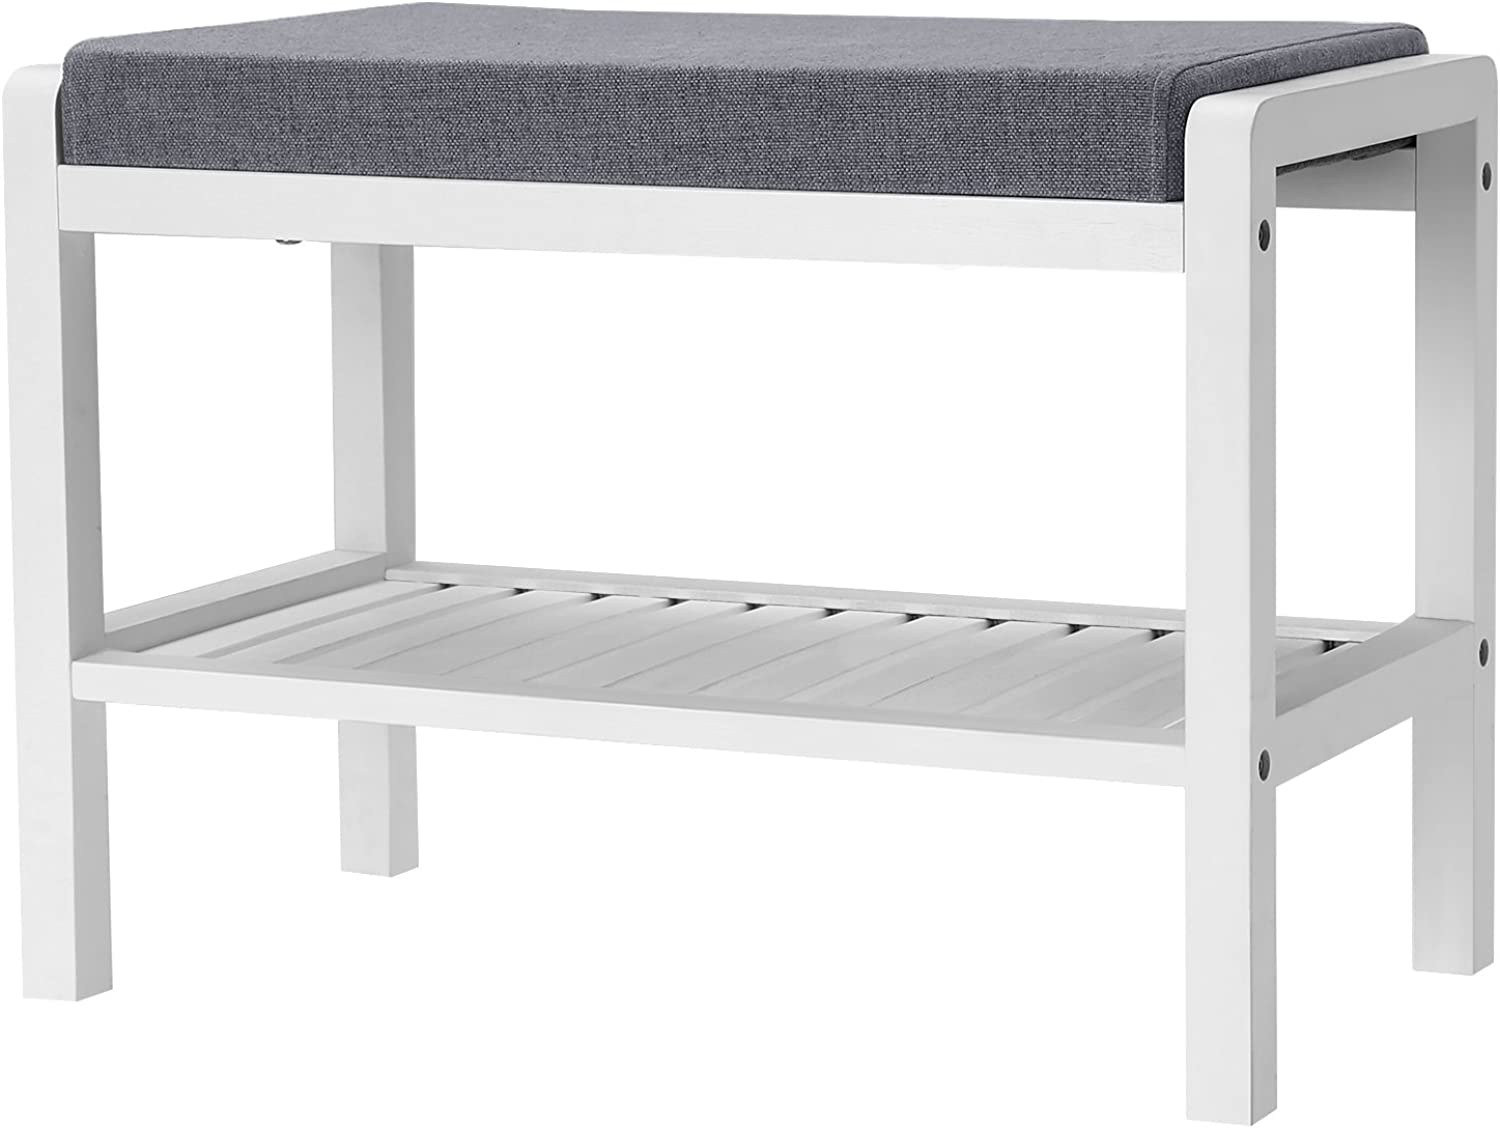 SONGMICS shoes Rack Bench with Cushion Upholstered Padded Seat, Storage Shelf, shoes Organizer, Holds Up to 350 Lb, Ideal for Entryway Bedroom Living Room Hallway Garage Mud Room White ULBS65WN